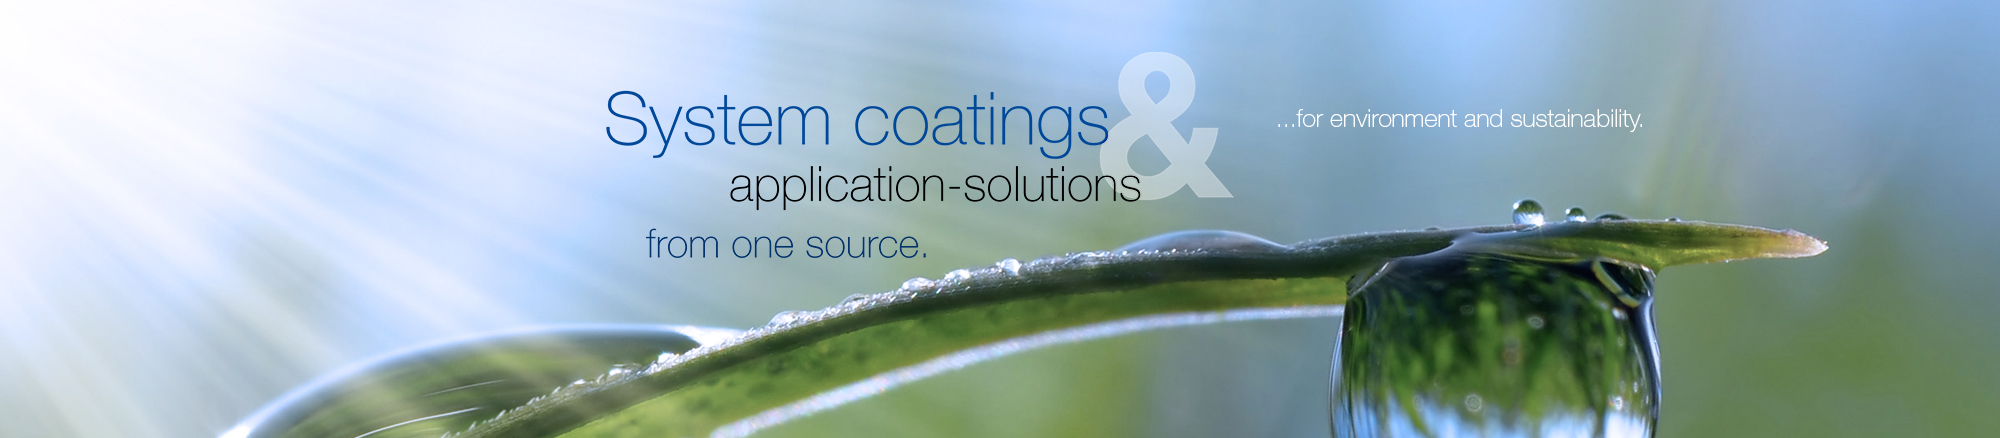 System coatings & application solutions from one source - for environment and sustainability